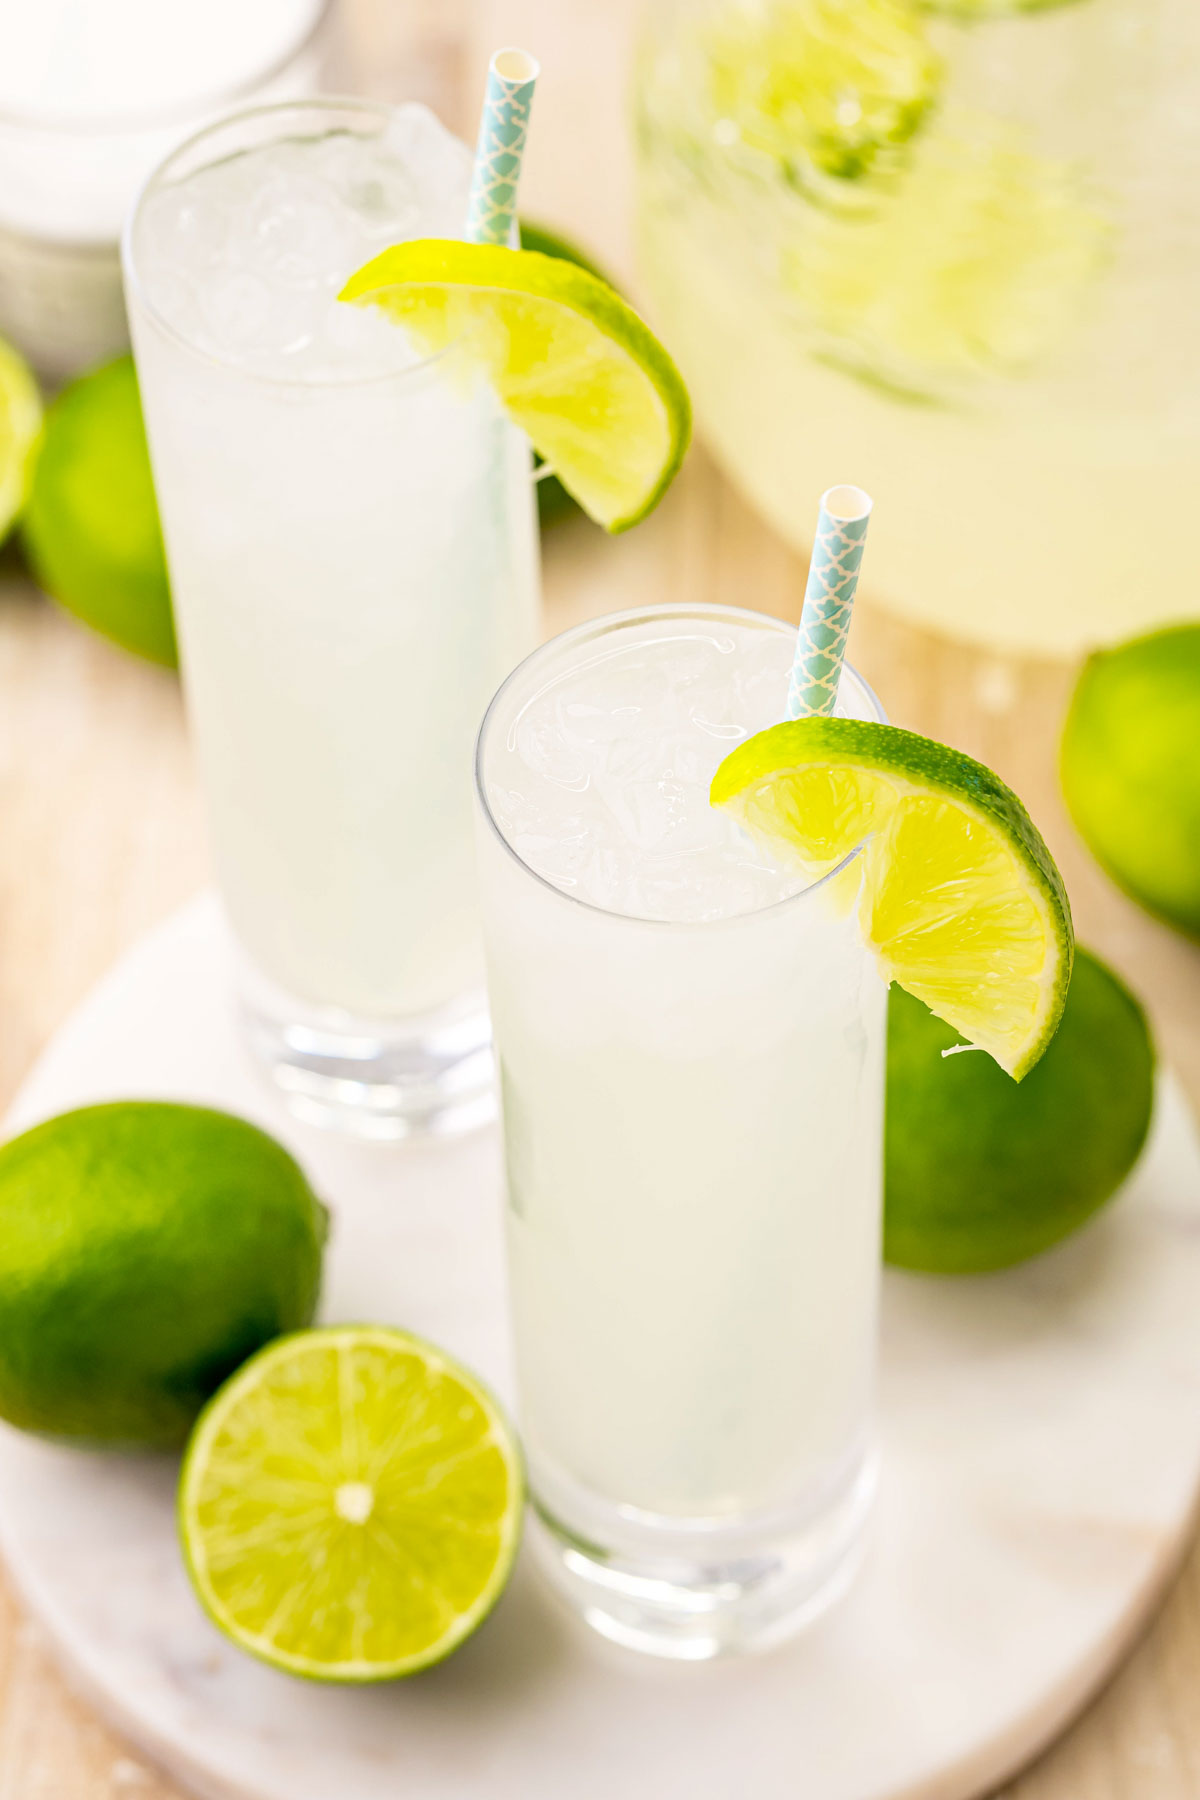 two glasses of homemade limeade with straws